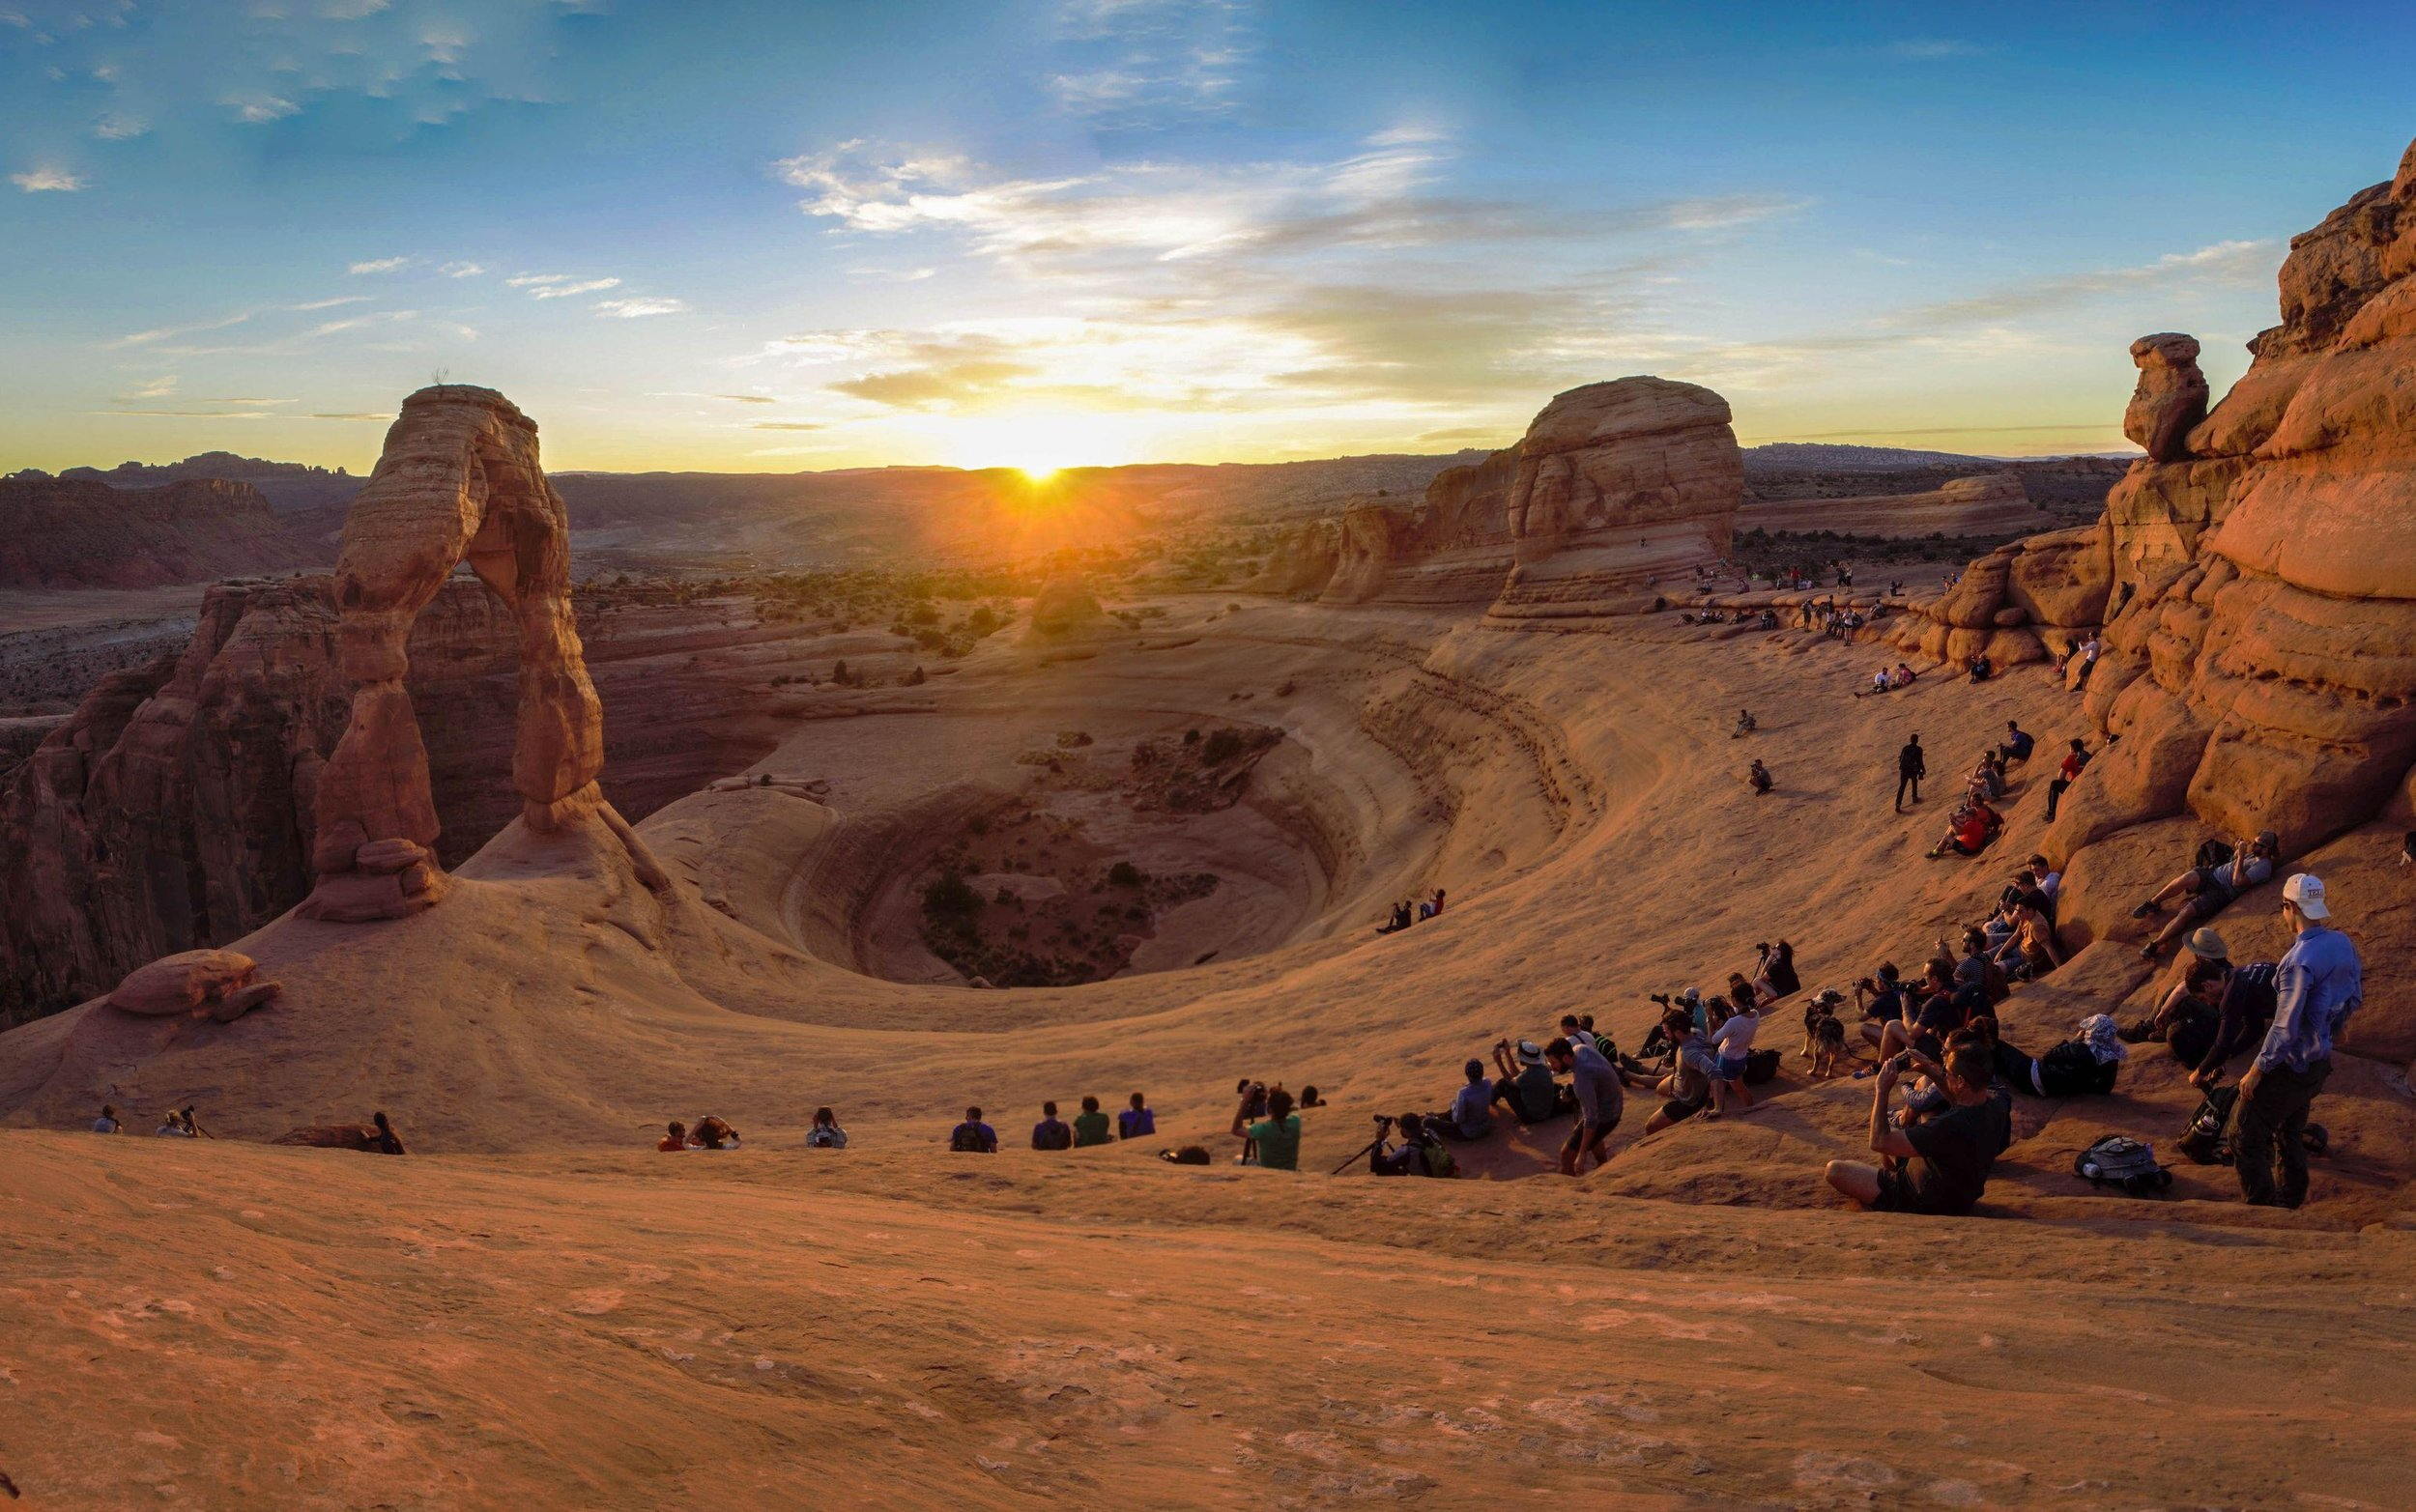 Sharing a surreal sunset in Arches National Park.